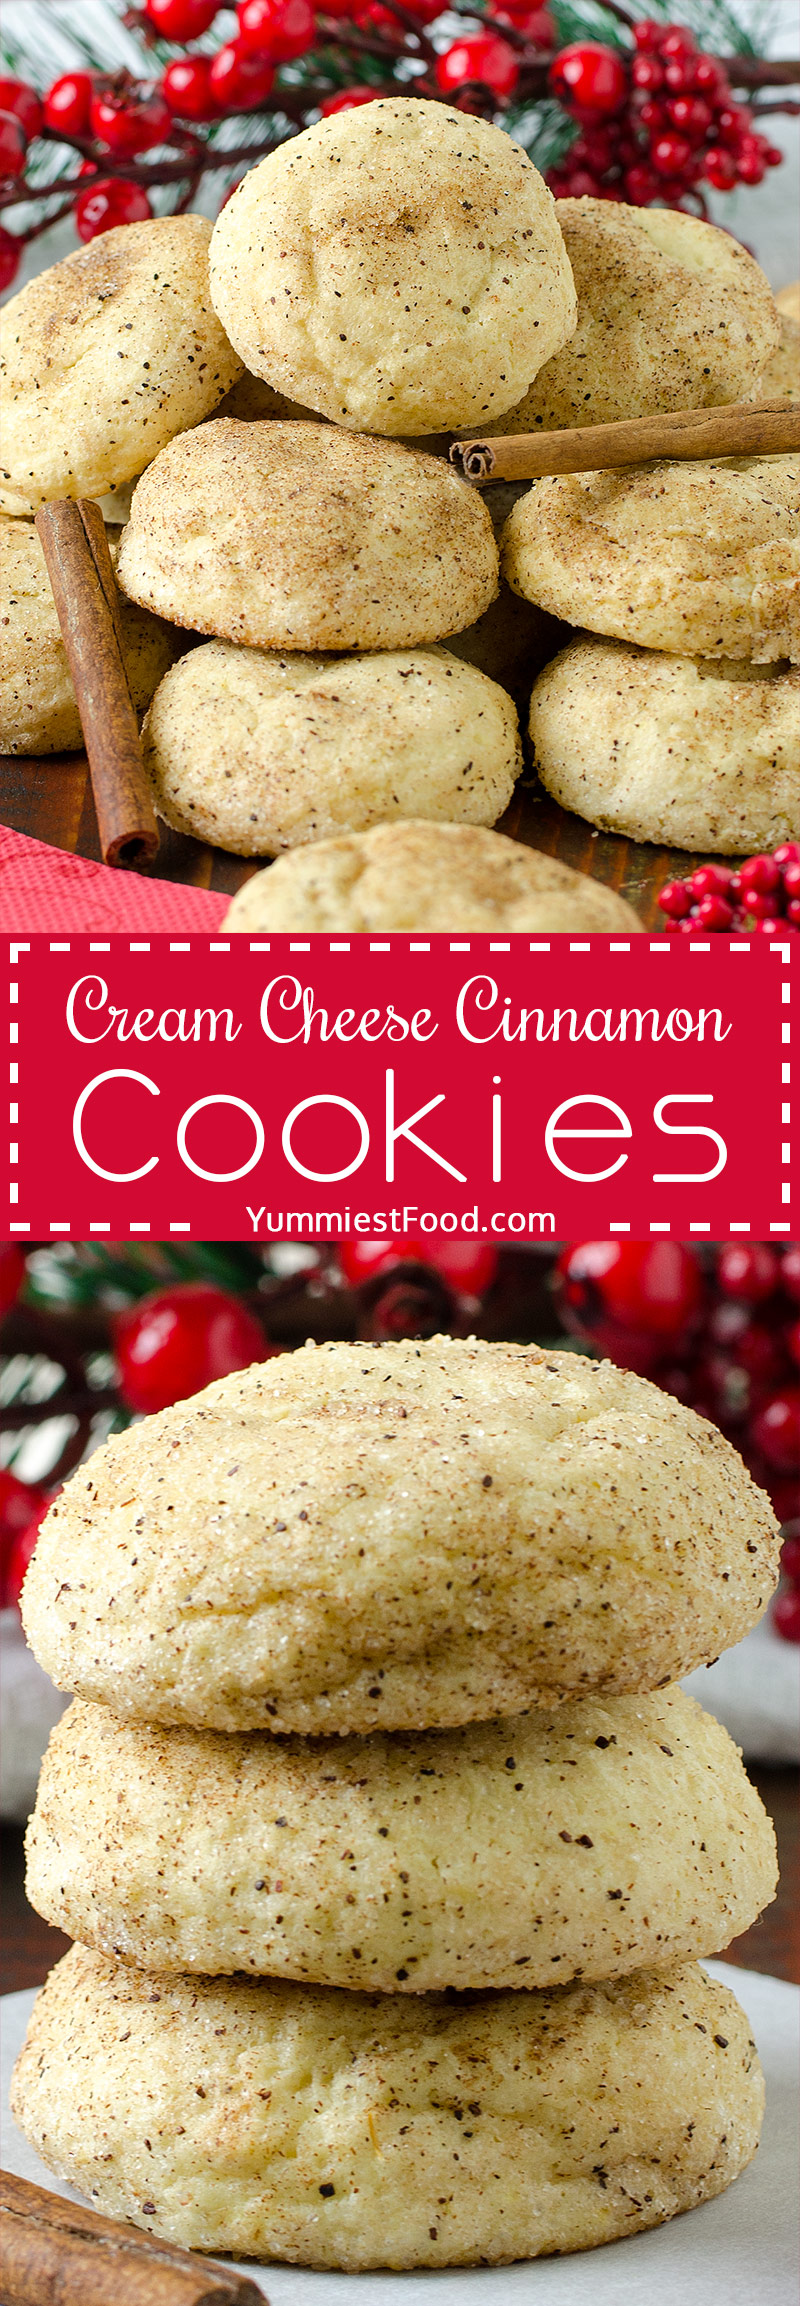 EASY CREAM CHEESE CINNAMON CHRISTMAS COOKIES - Easy and best cream cheese cinnamon cookies recipe ever! Perfect cookies for holidays